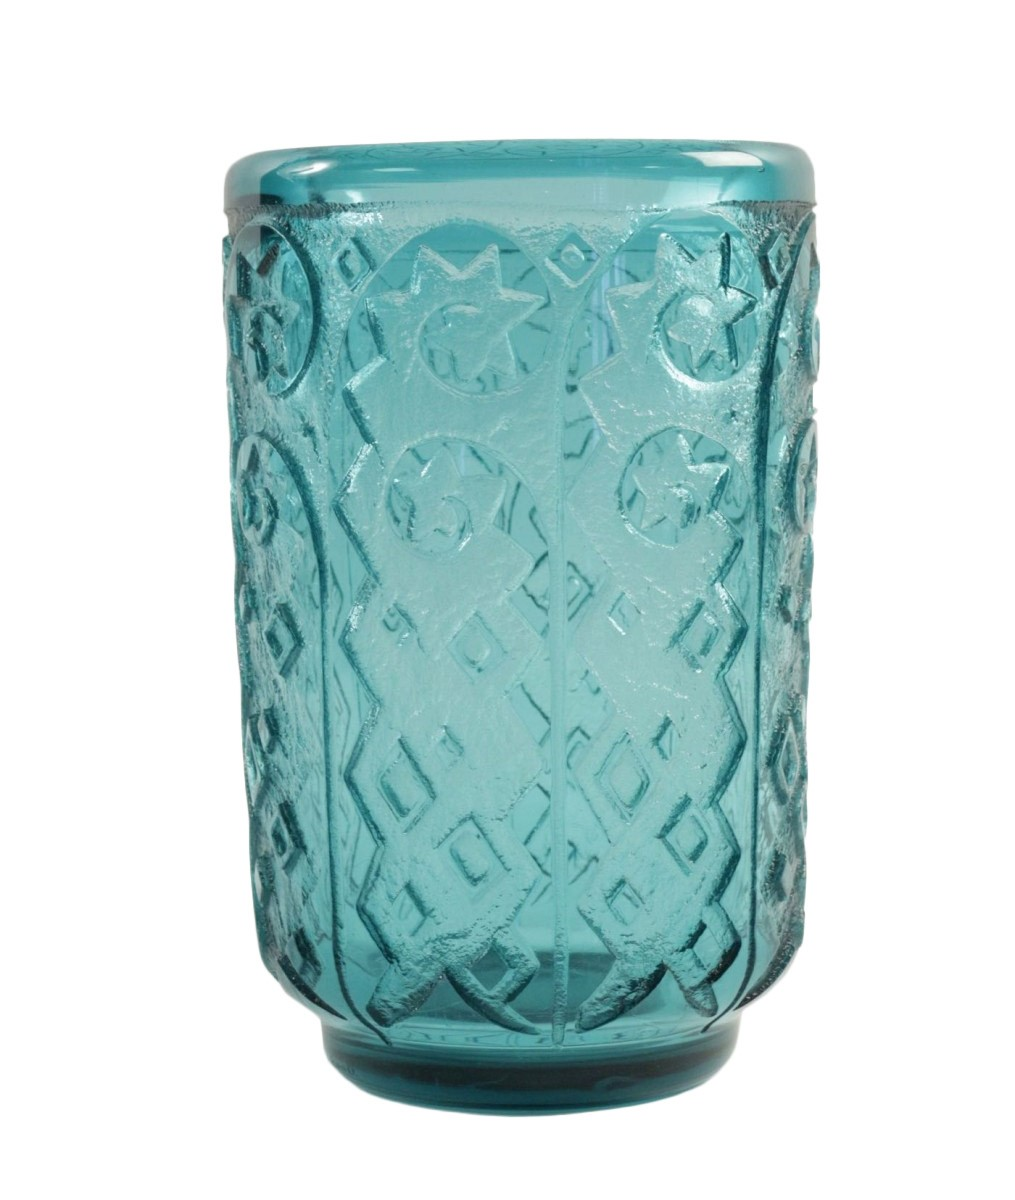 Sale The Deco Haus Tagged Blue: Daum Nancy Monumental And Thick Art Deco Vase